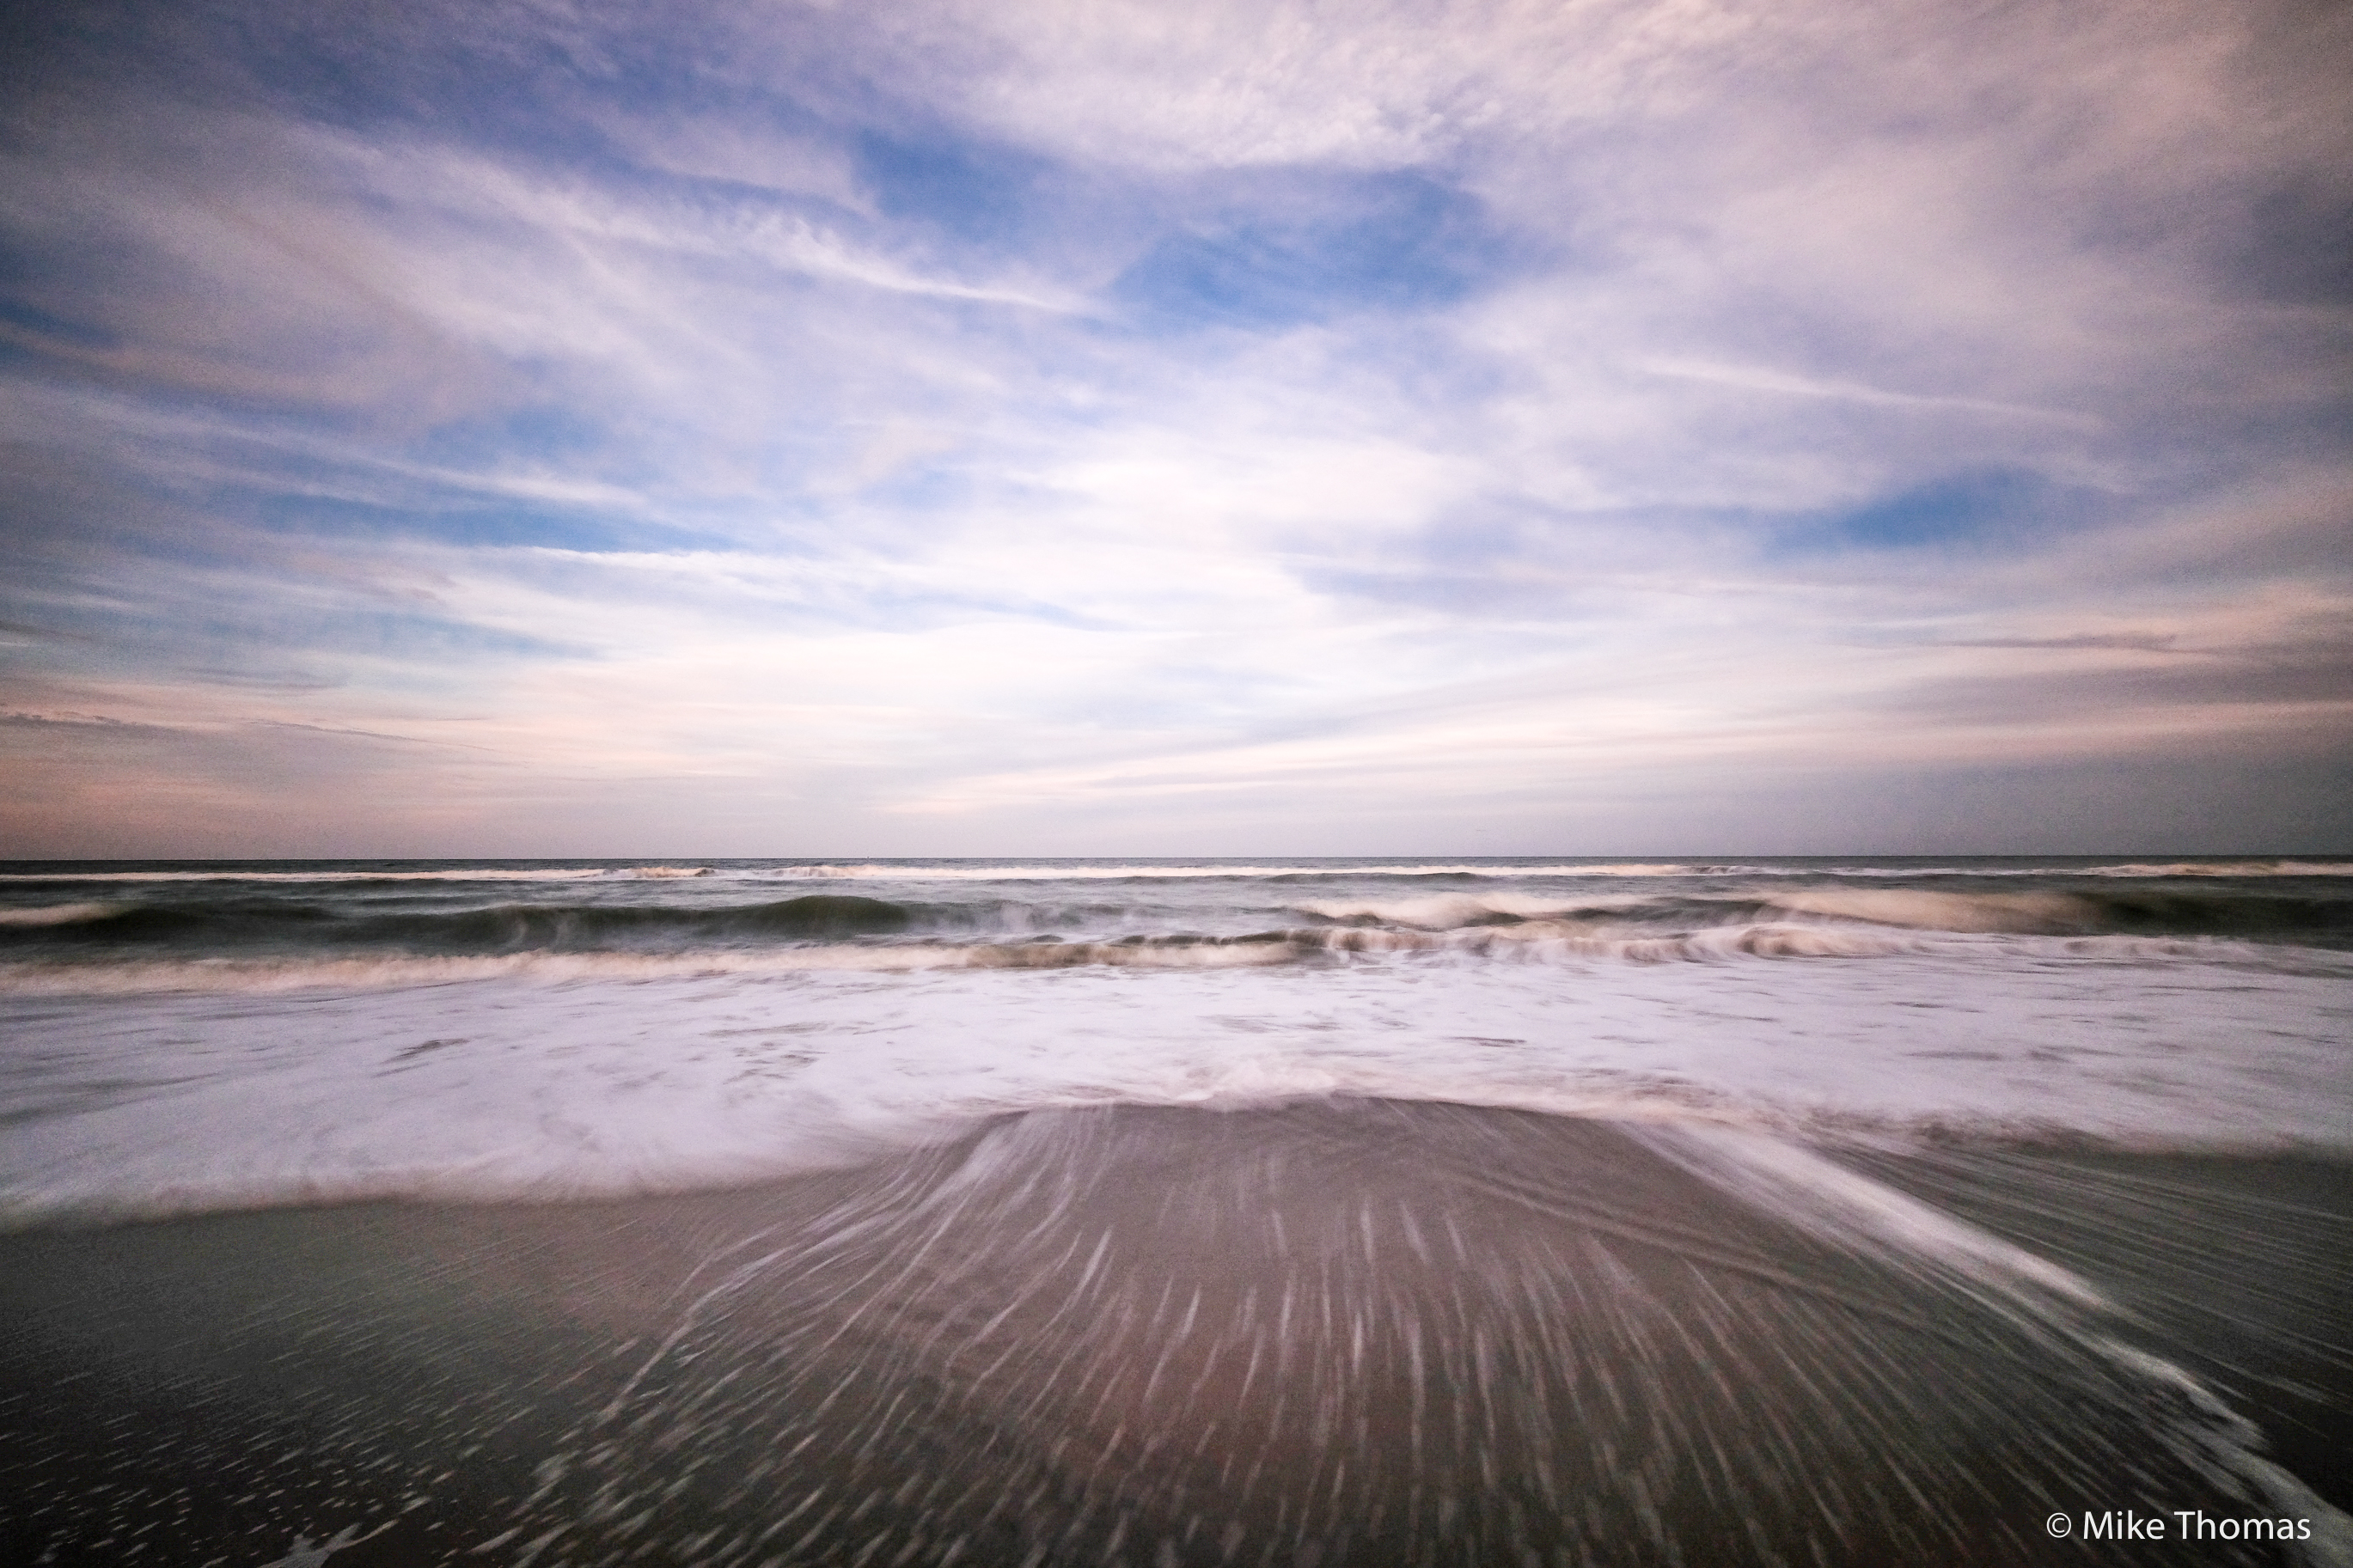 florida, beaches, melbourne beach florida, long exposure shot, nd filter, neutral density filter, ocean